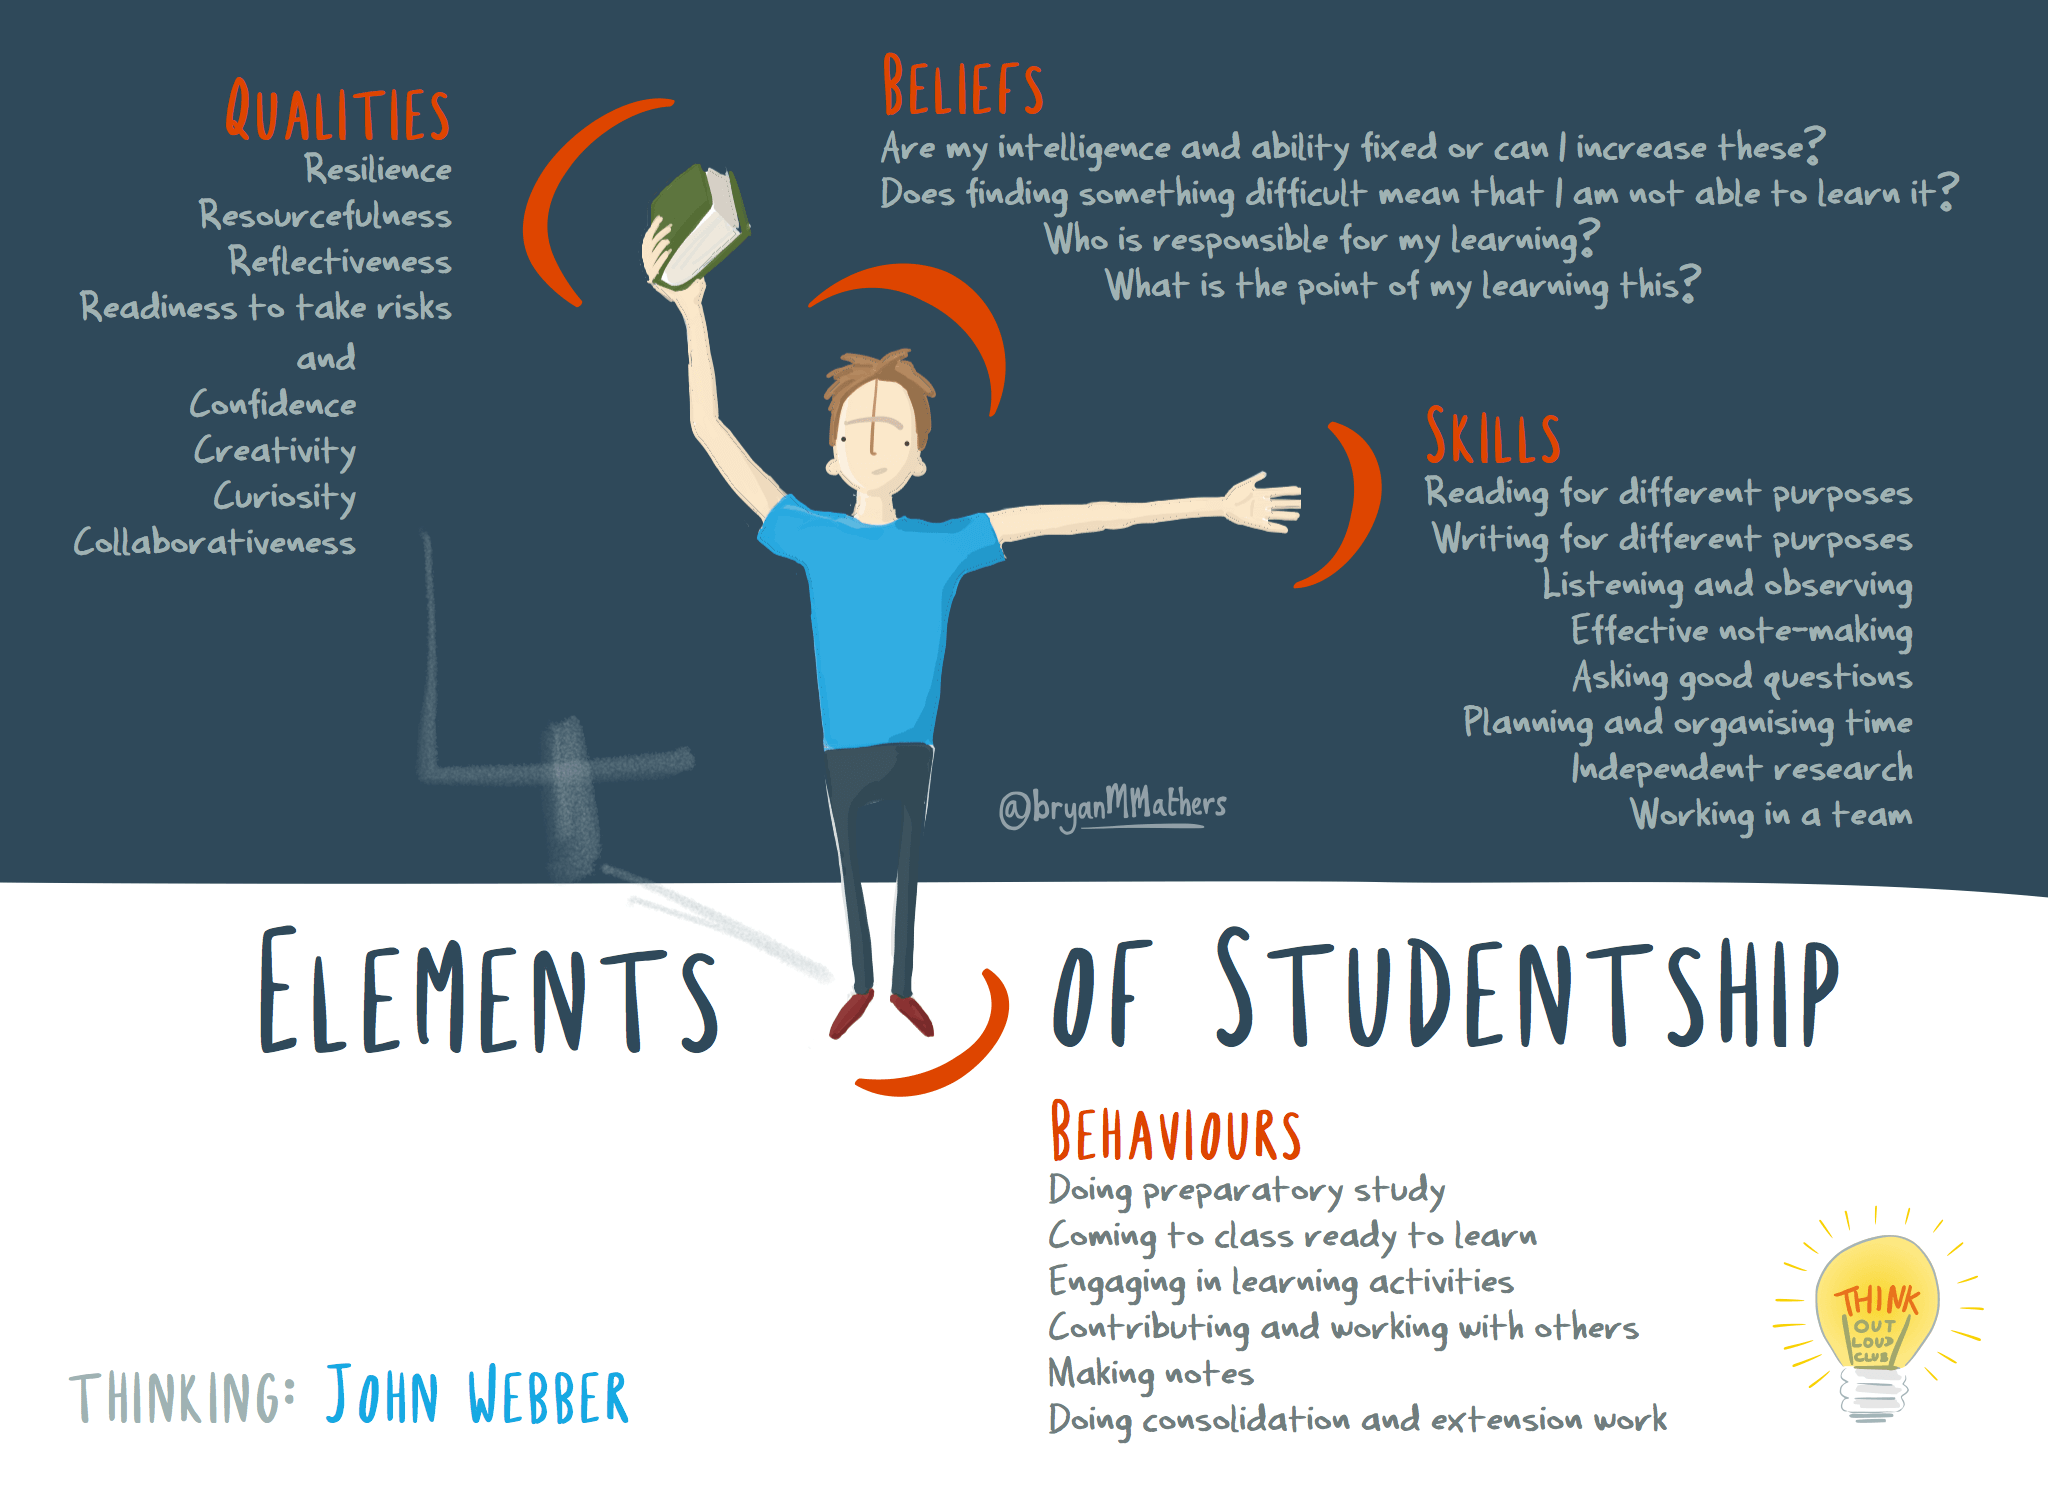 The Four Elements of Studentship